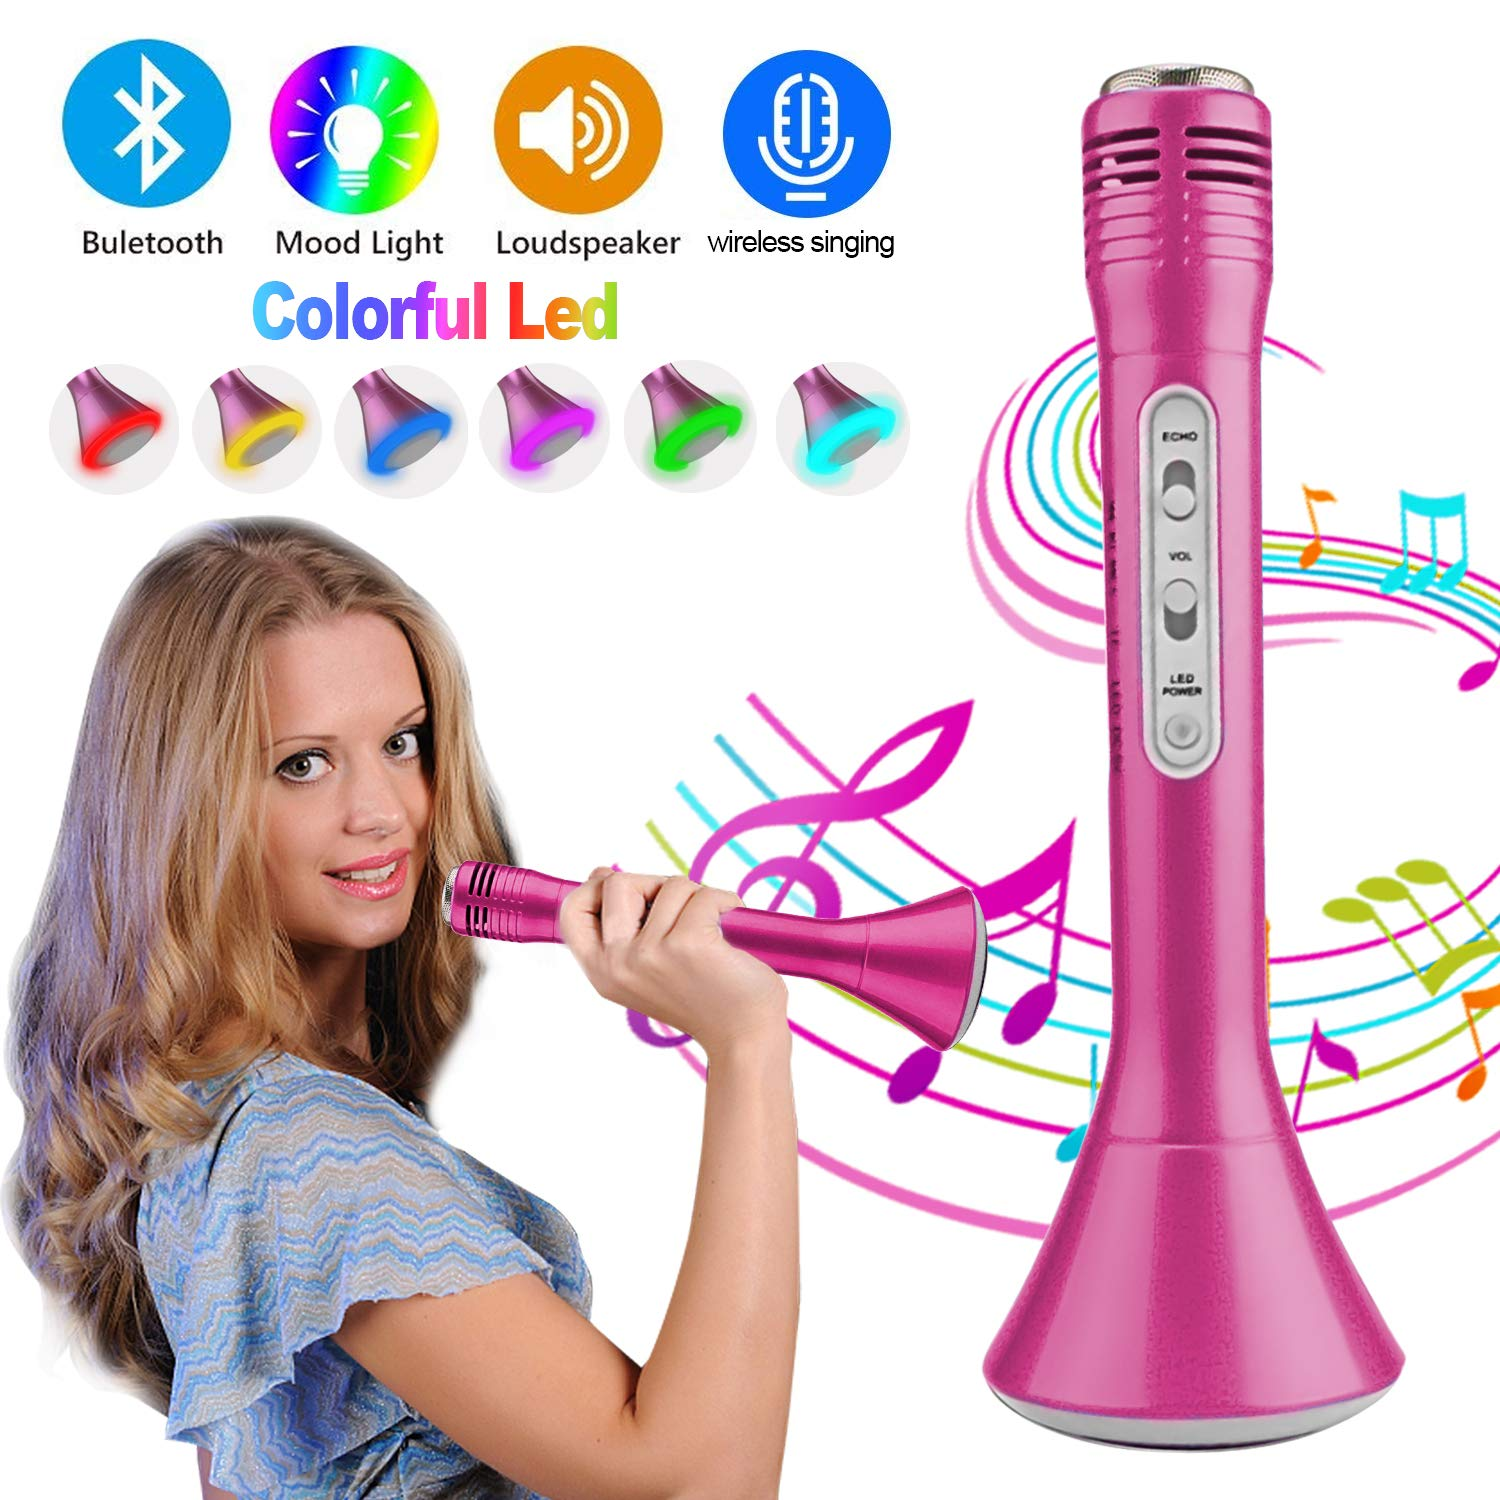 Kids Wireless Karaoke Microphone with Speaker Colorful LED Light for Girls Boys Toddlers Portable Handheld Bluetooth Music Toys for Singing Music Playing Party KTV Support iOS Android Birthday Gifts by iGeeKid (Image #1)